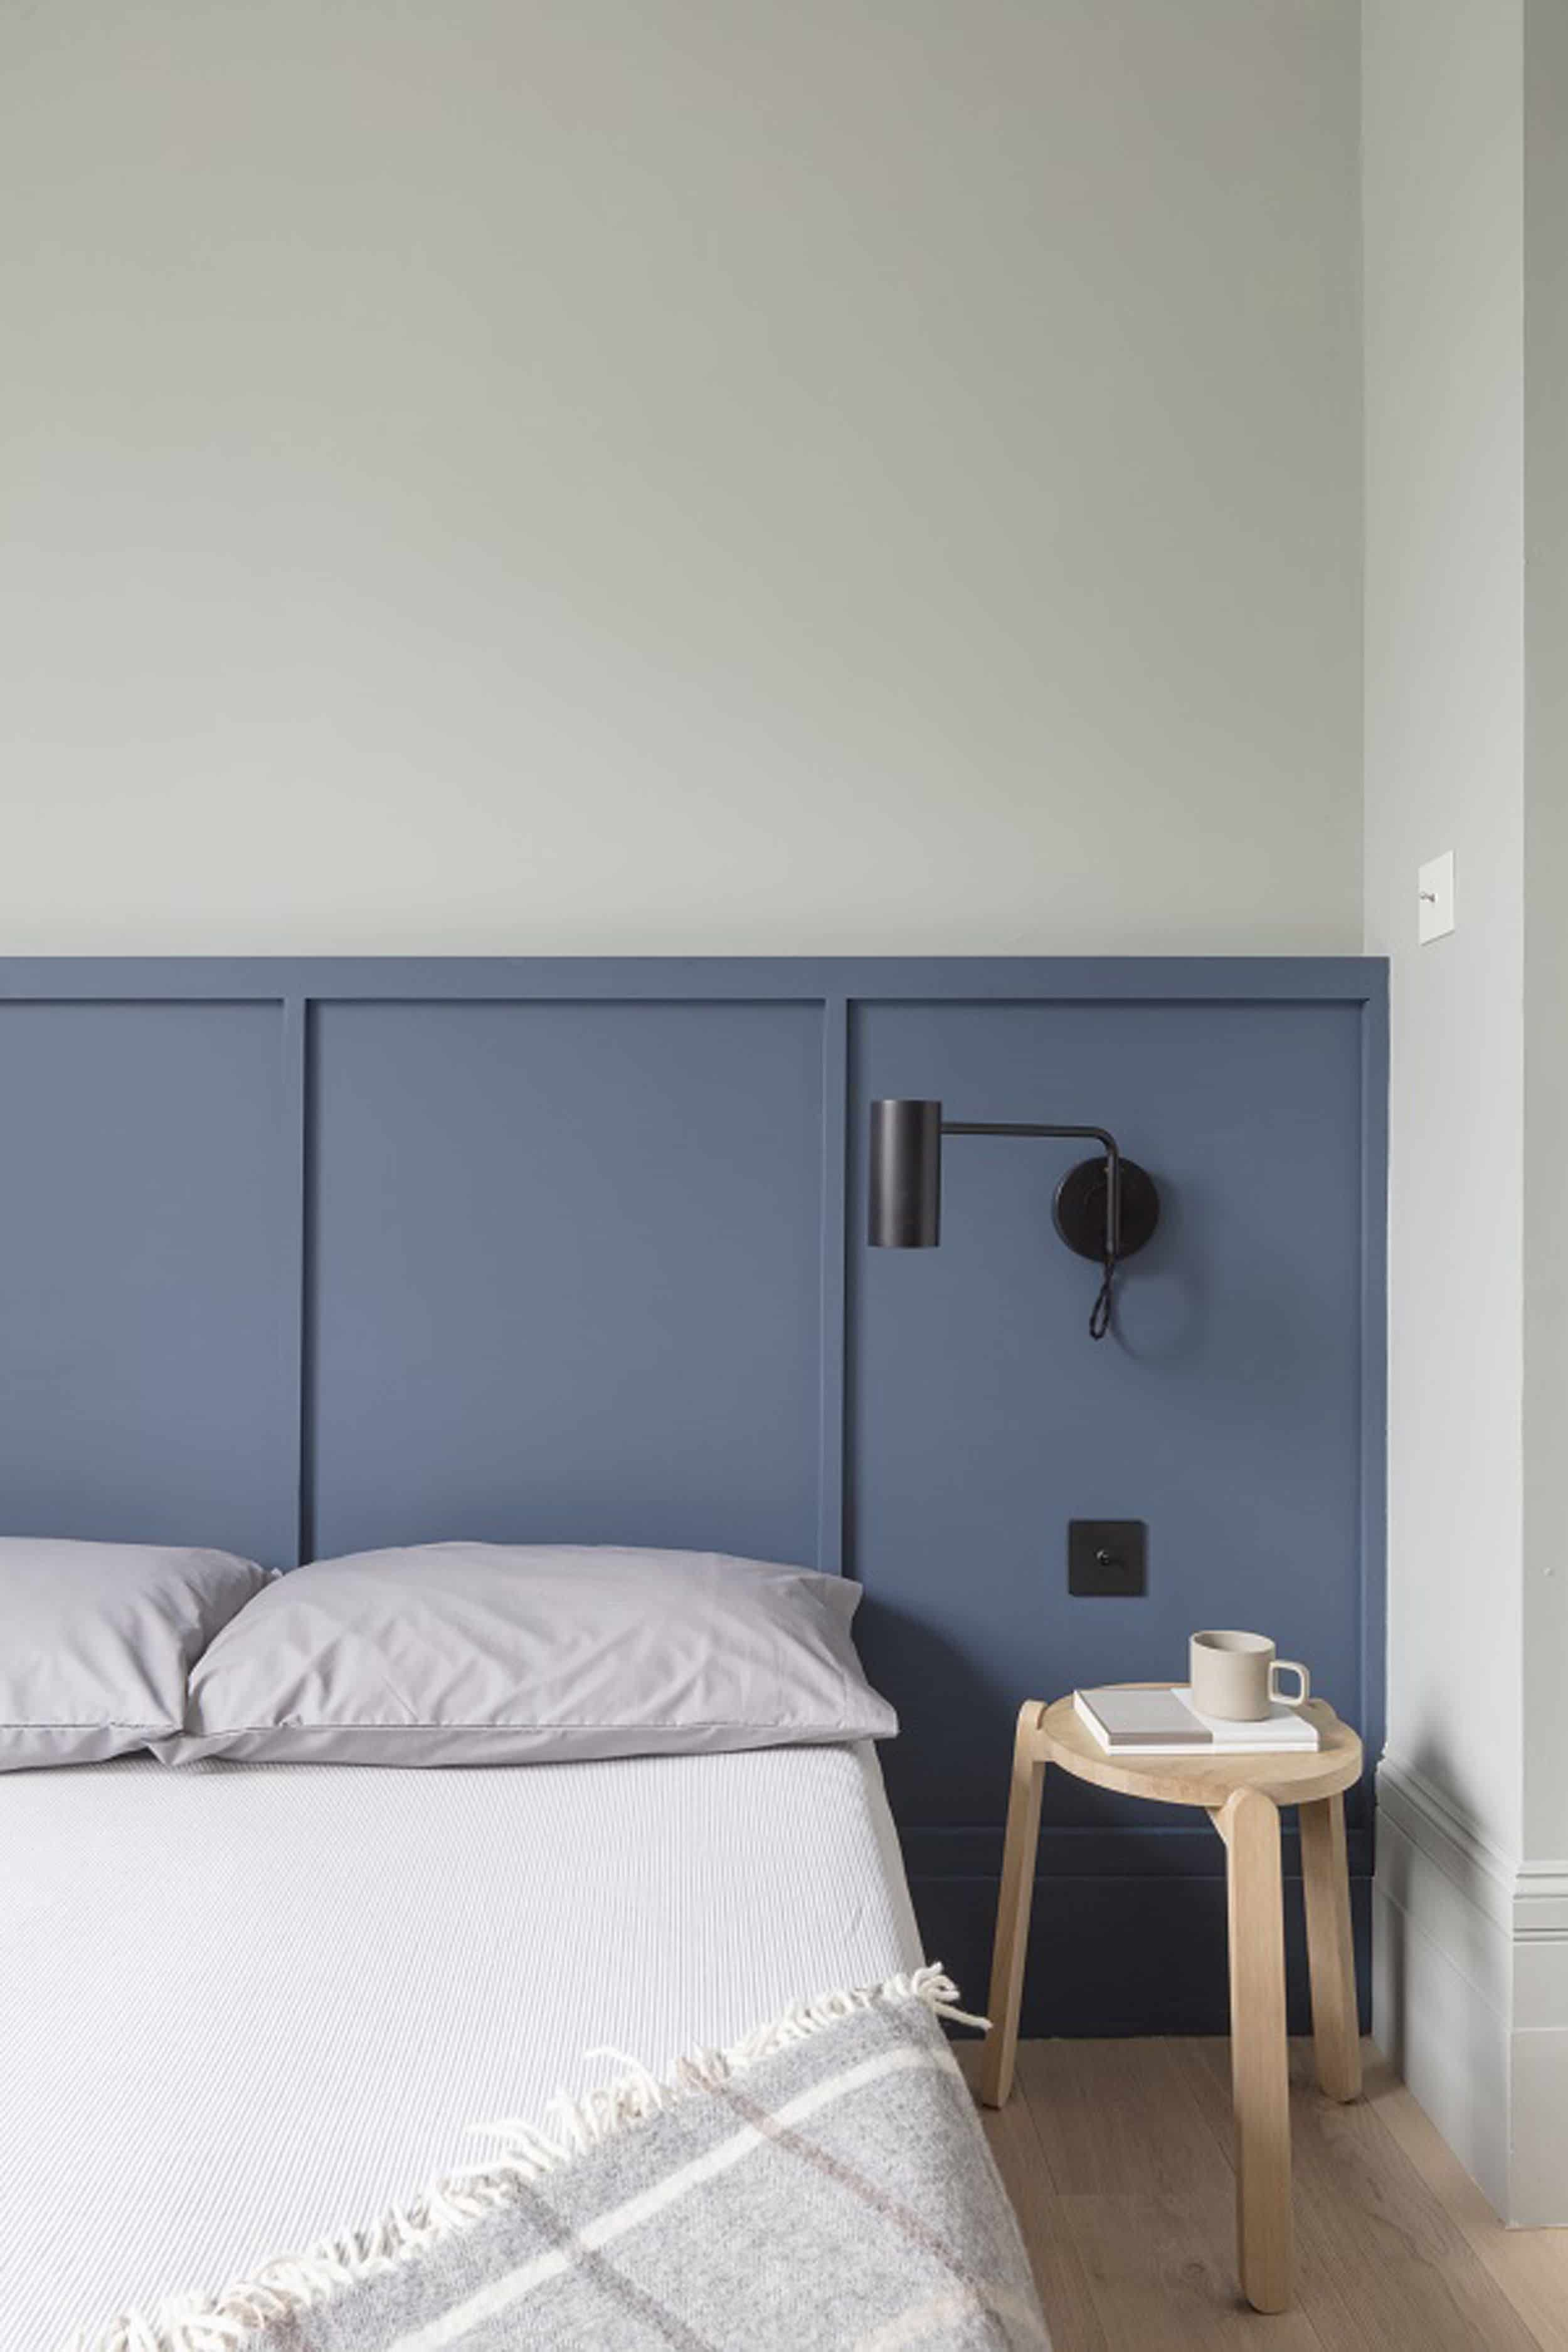 The Headboard Sconce Might Be Our Favorite Hotel Inspired Small Bedroom Hack Emily Henderson Small Bedroom Hacks Bedroom Hacks Small Bedroom